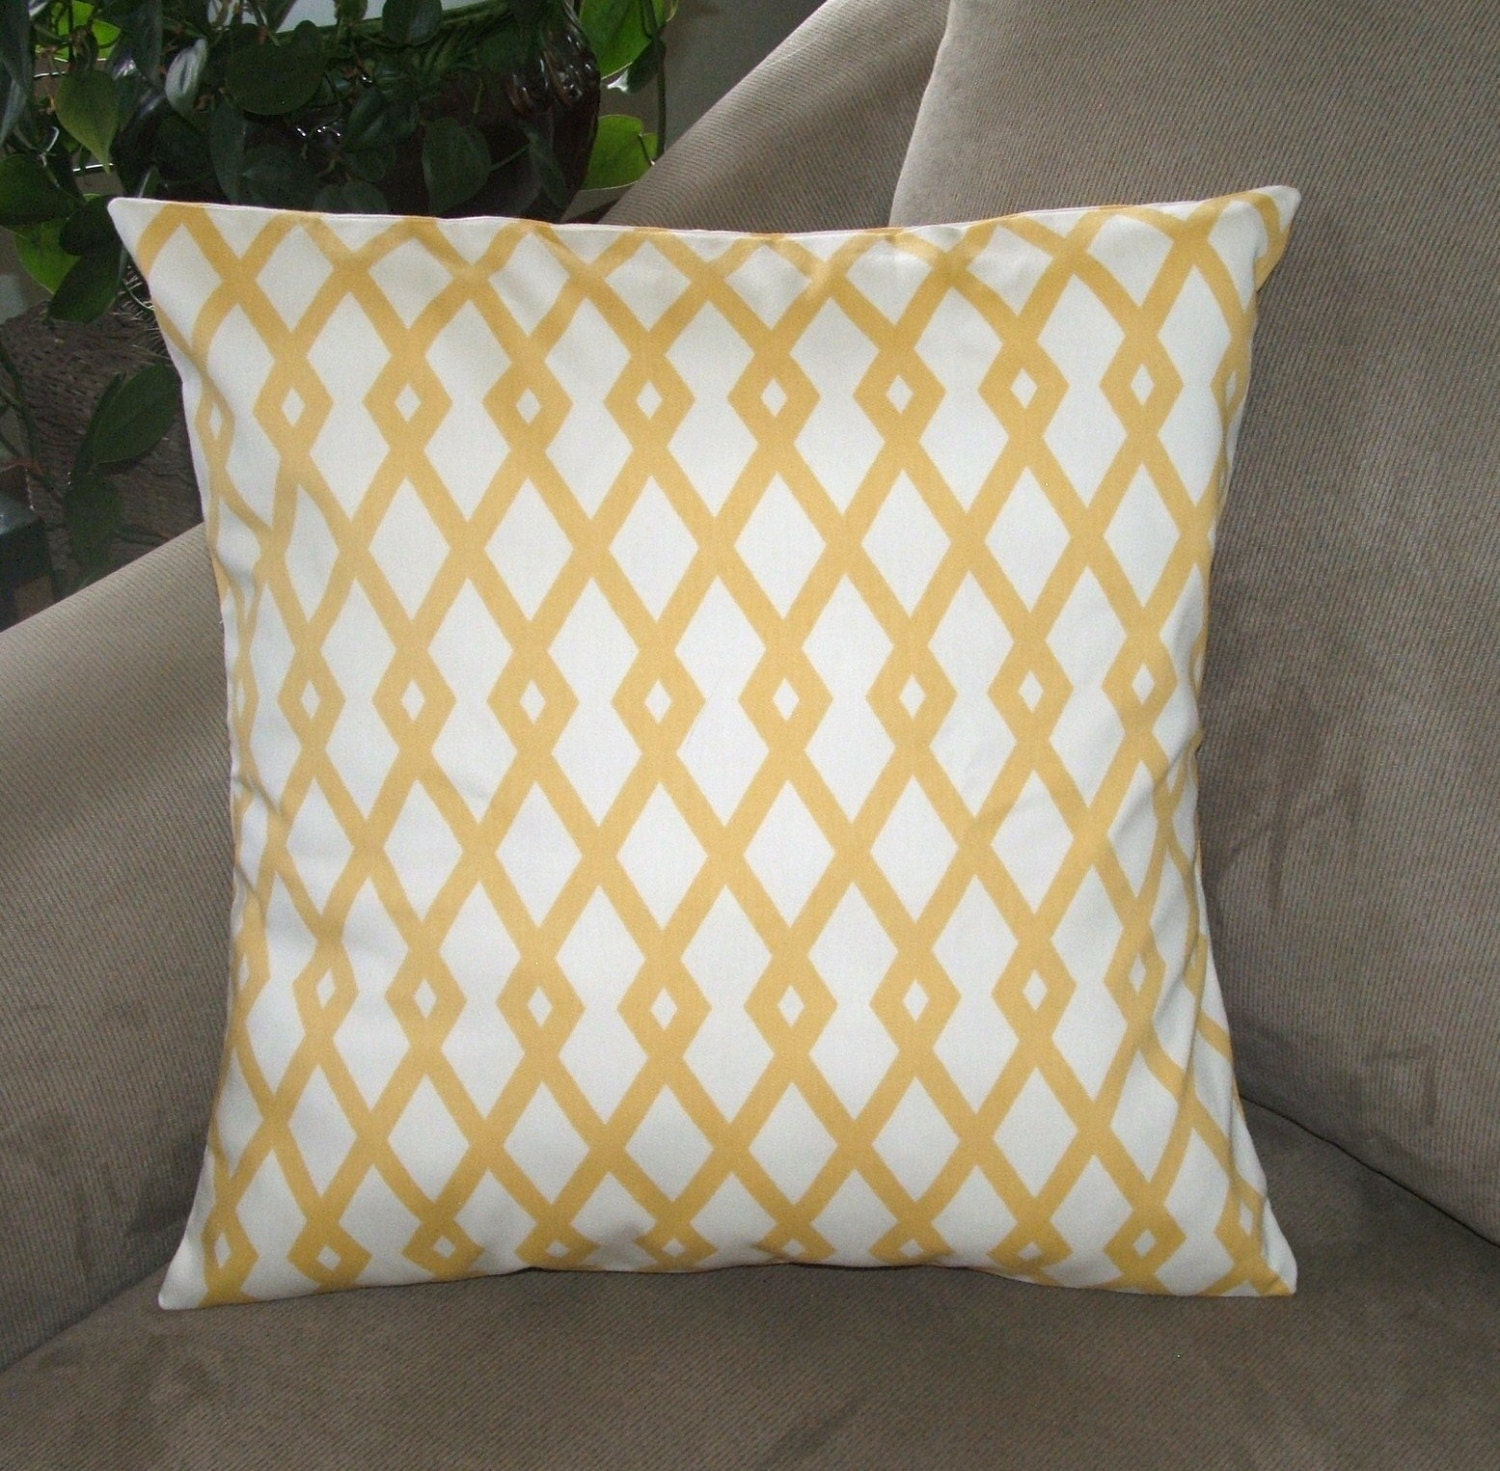 Gold and White Geometric Pattern Decorative Pillow Cover